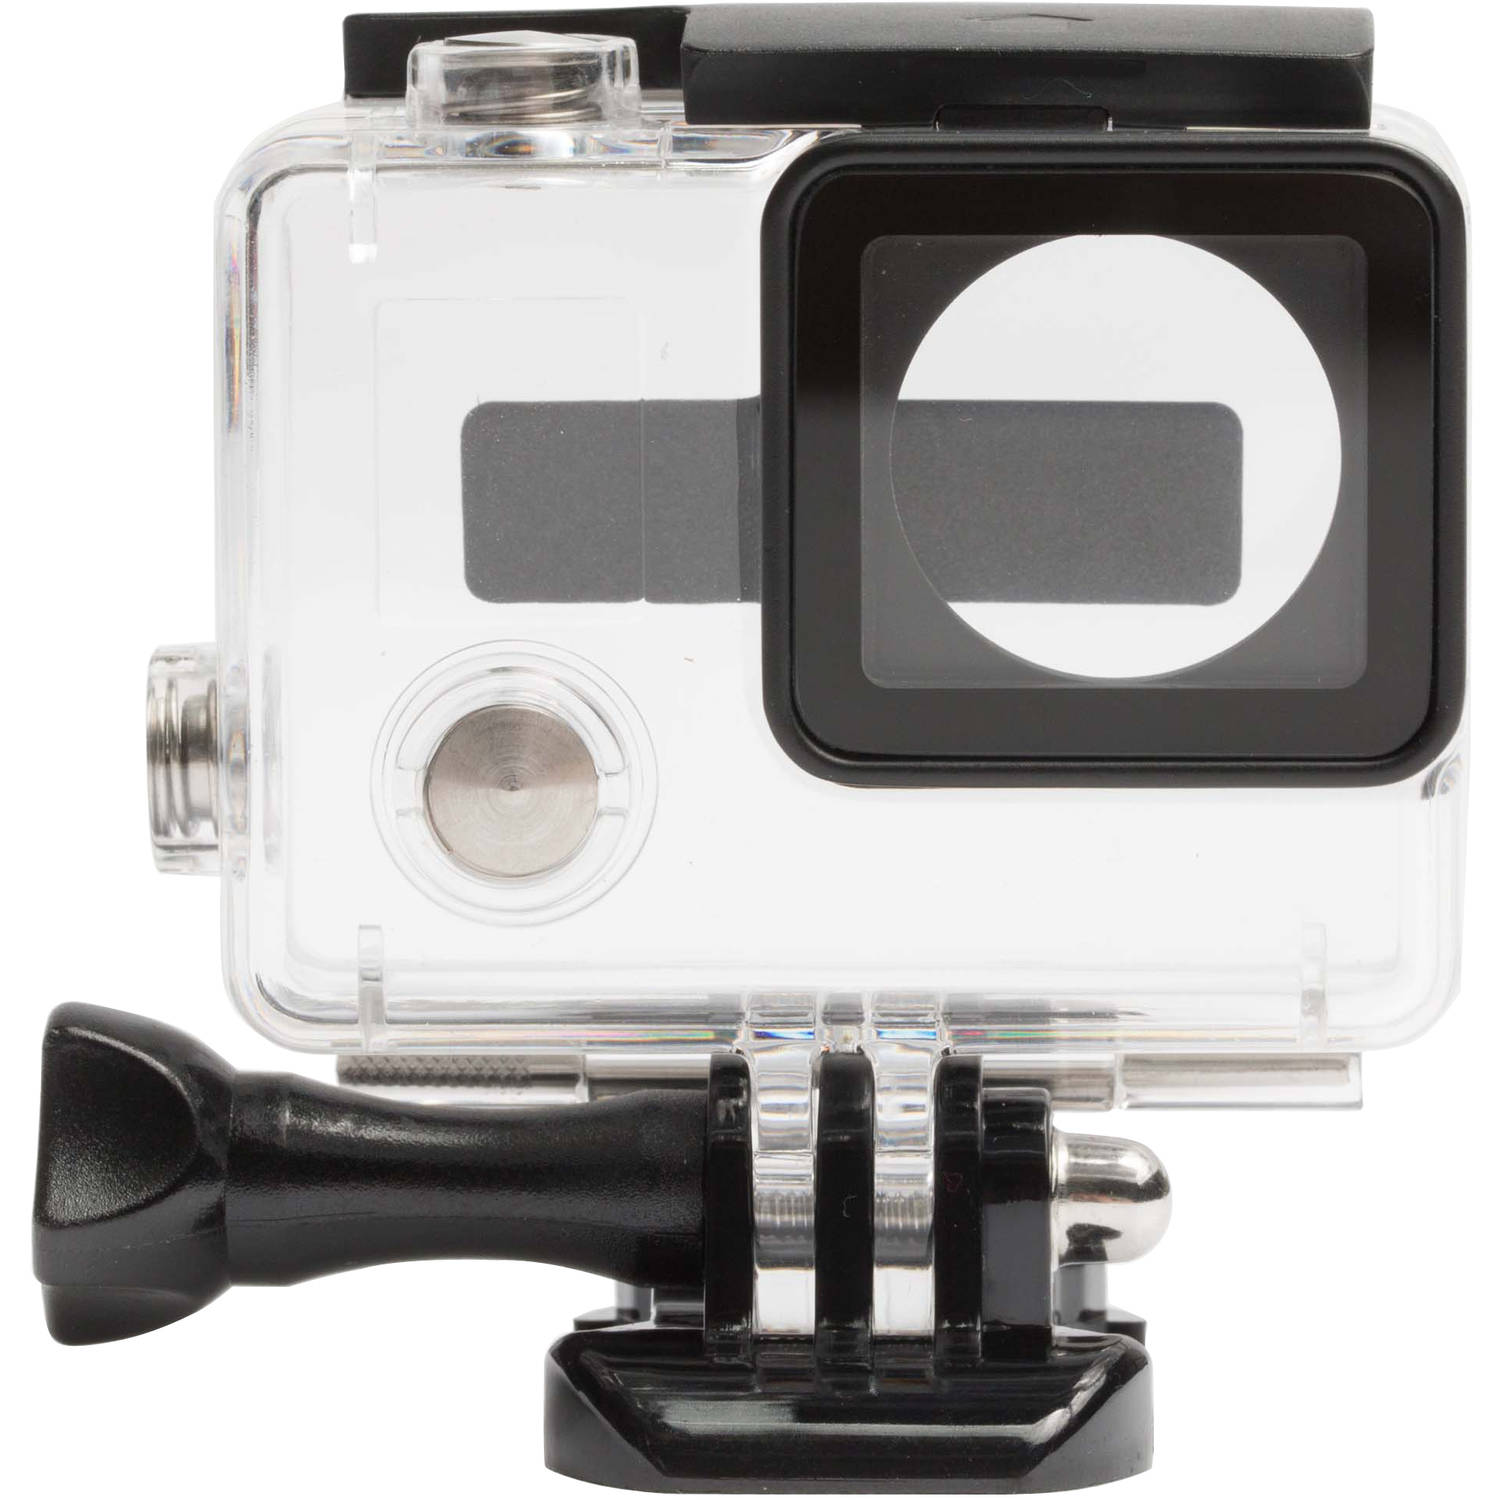 KAYATA Waterproof Protective Housing for Gopro Hero 4 & 3